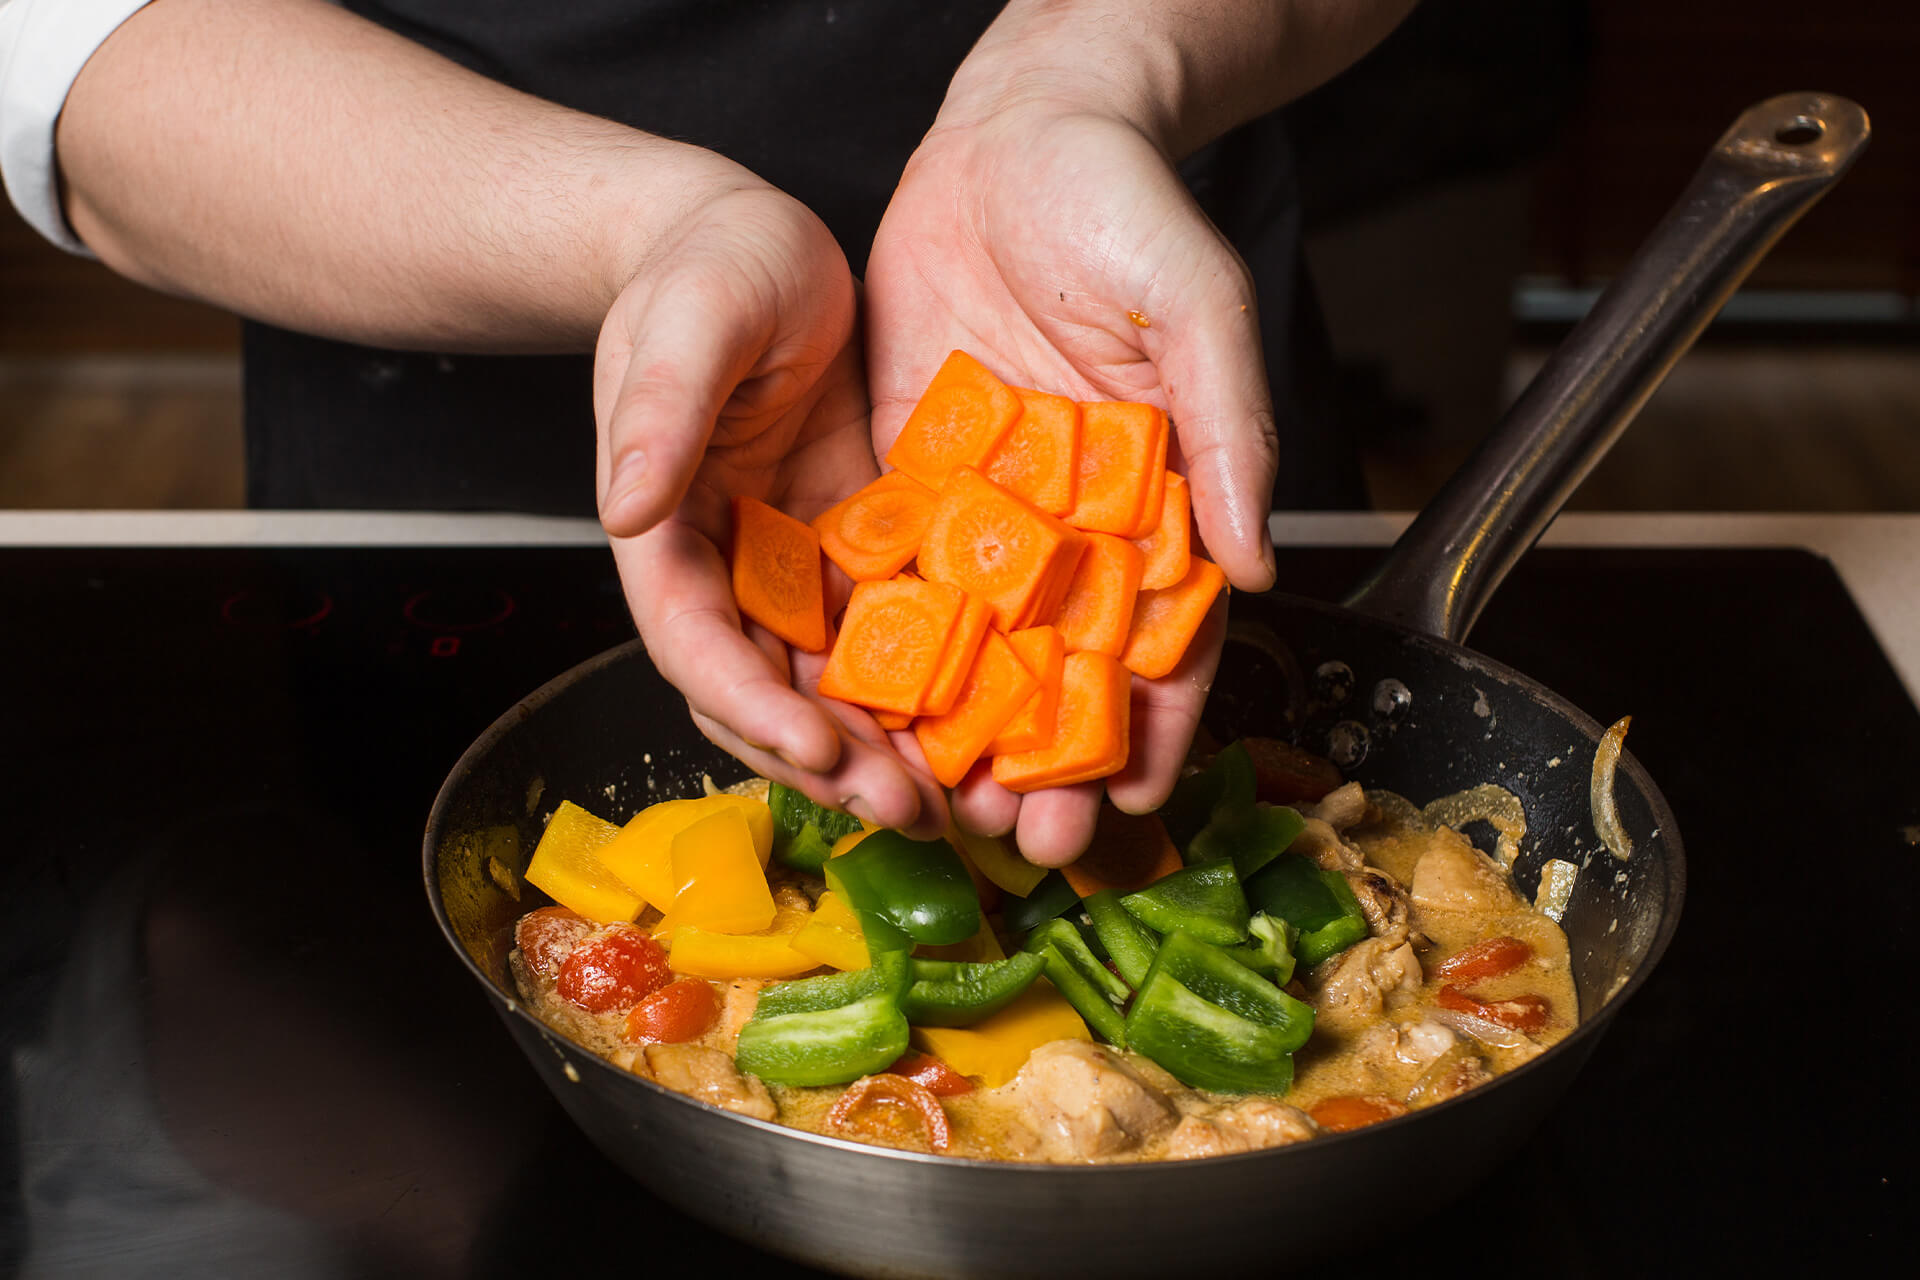 Stir-fry and simmer chicken and vegetables